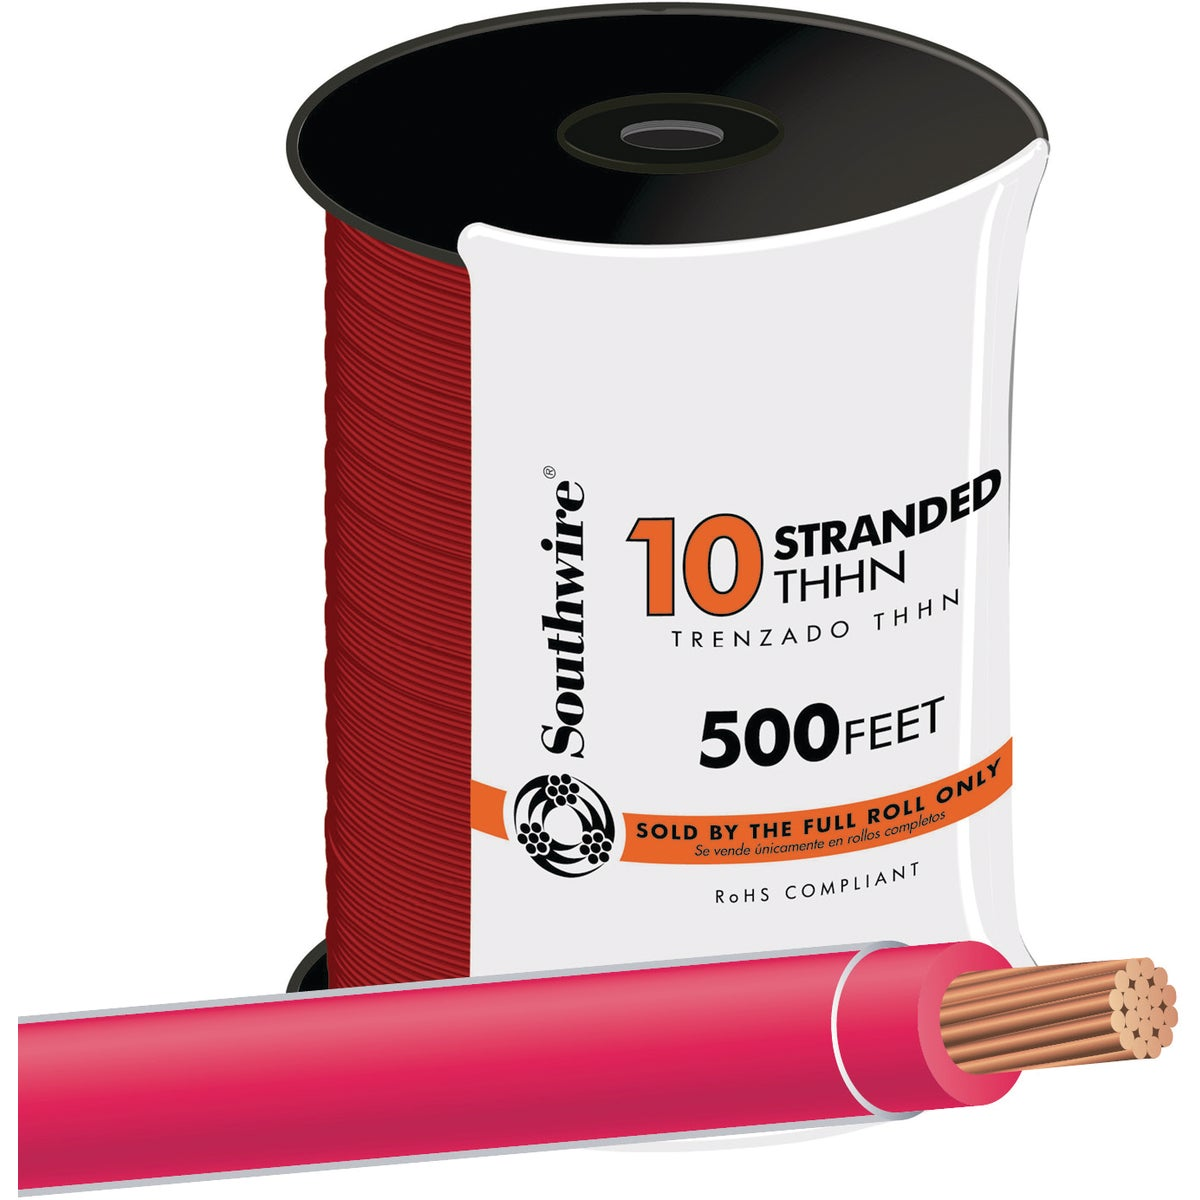 500' 10STR RED THHN WIRE - 22975757 by Southwire Company